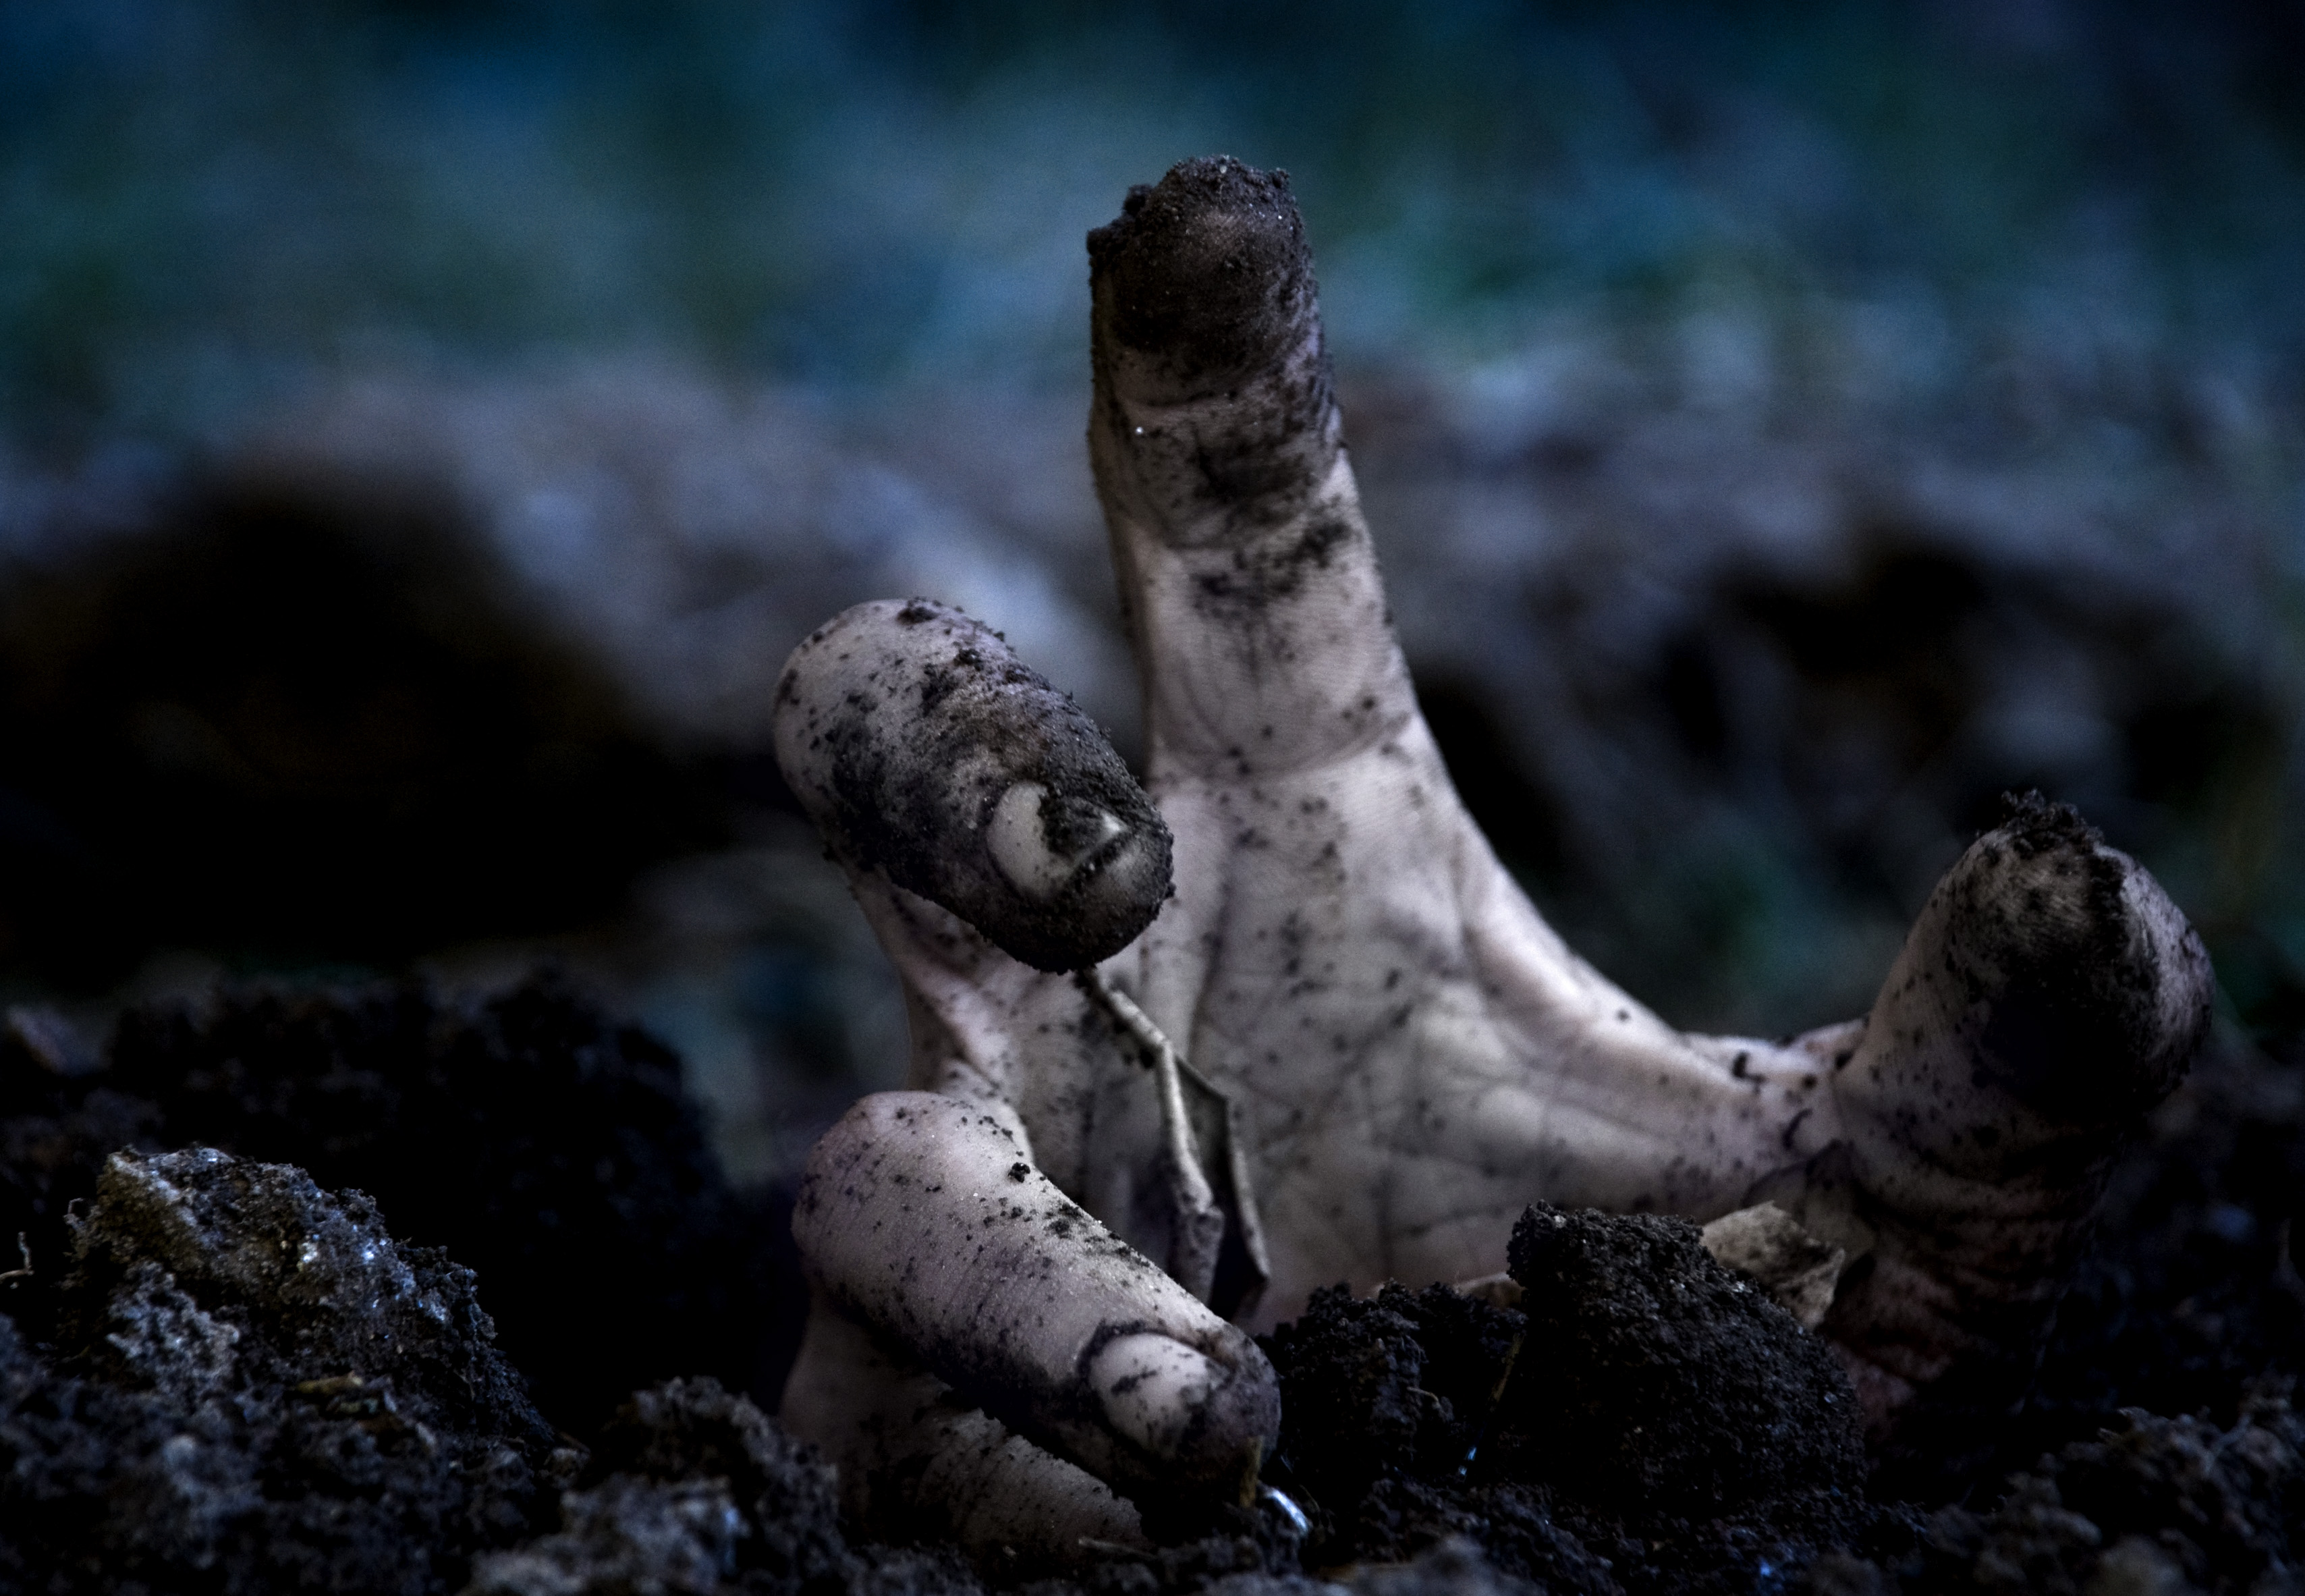 Download Free Hd Horror Wallpapers: 18 Scary HD Zombie Wallpapers